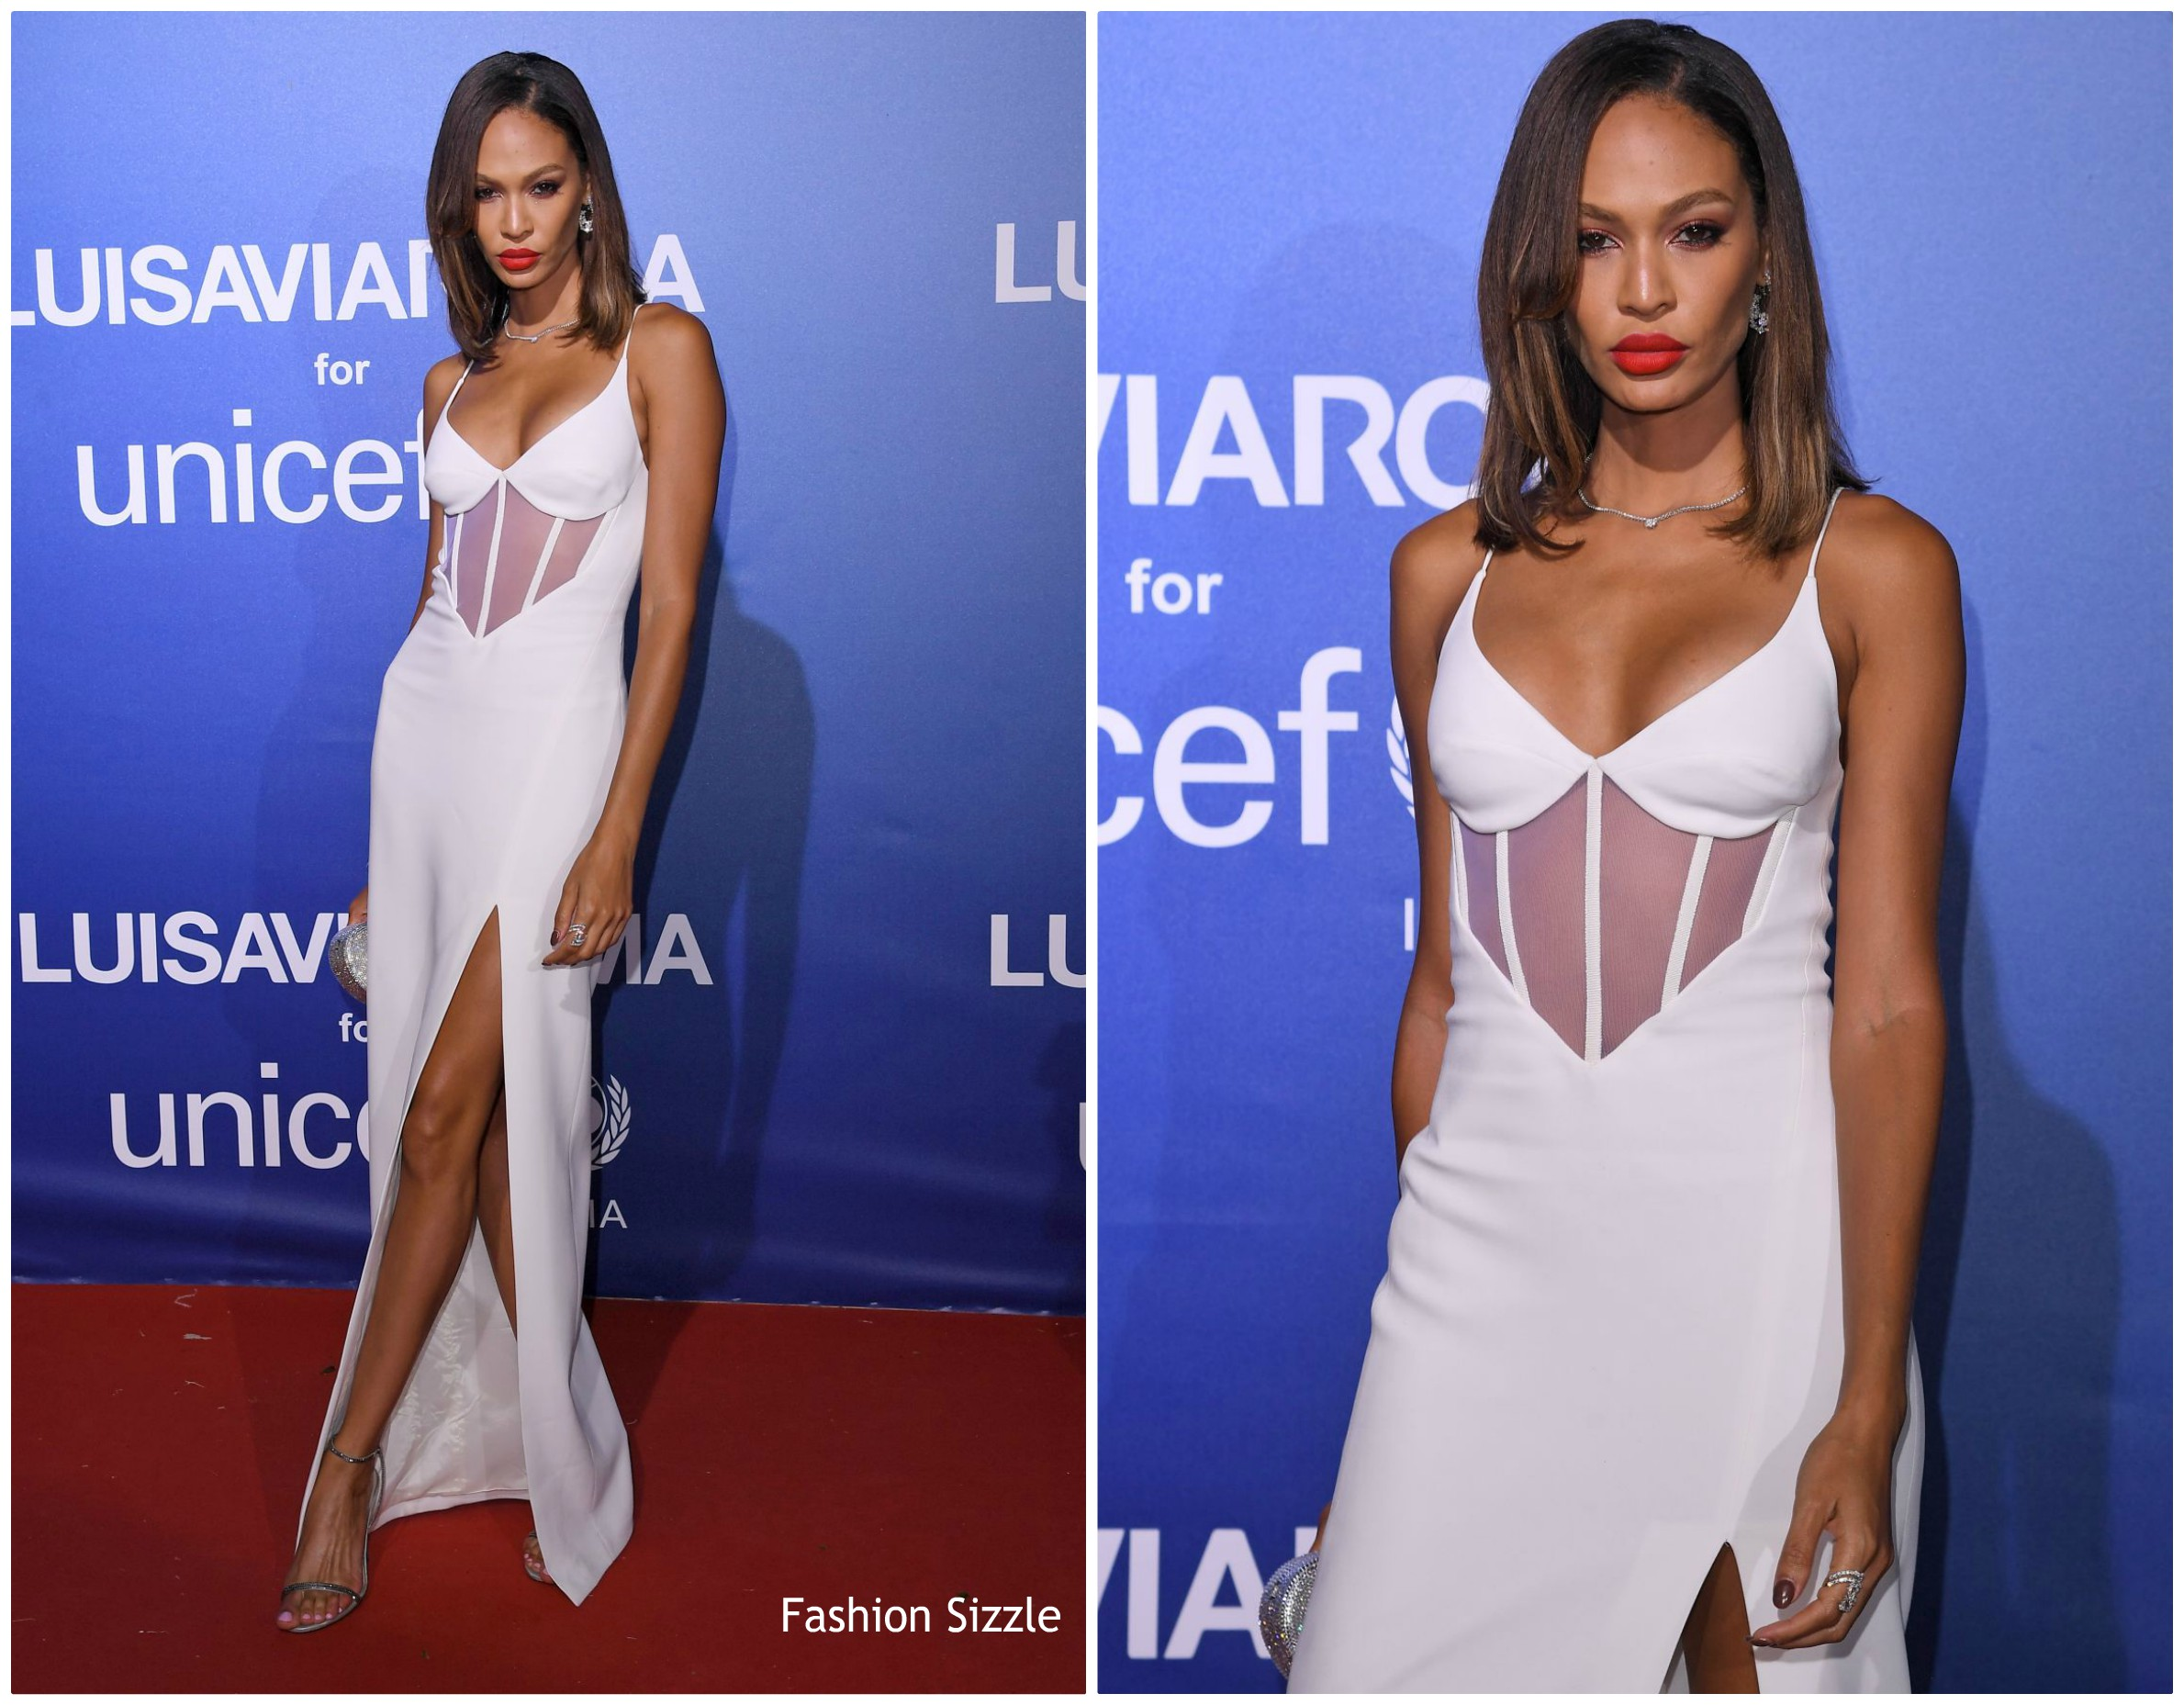 joan-smalls-in-david-koma-2019-unicef-summer-gala-presented-by-luisaviaroma-dinner